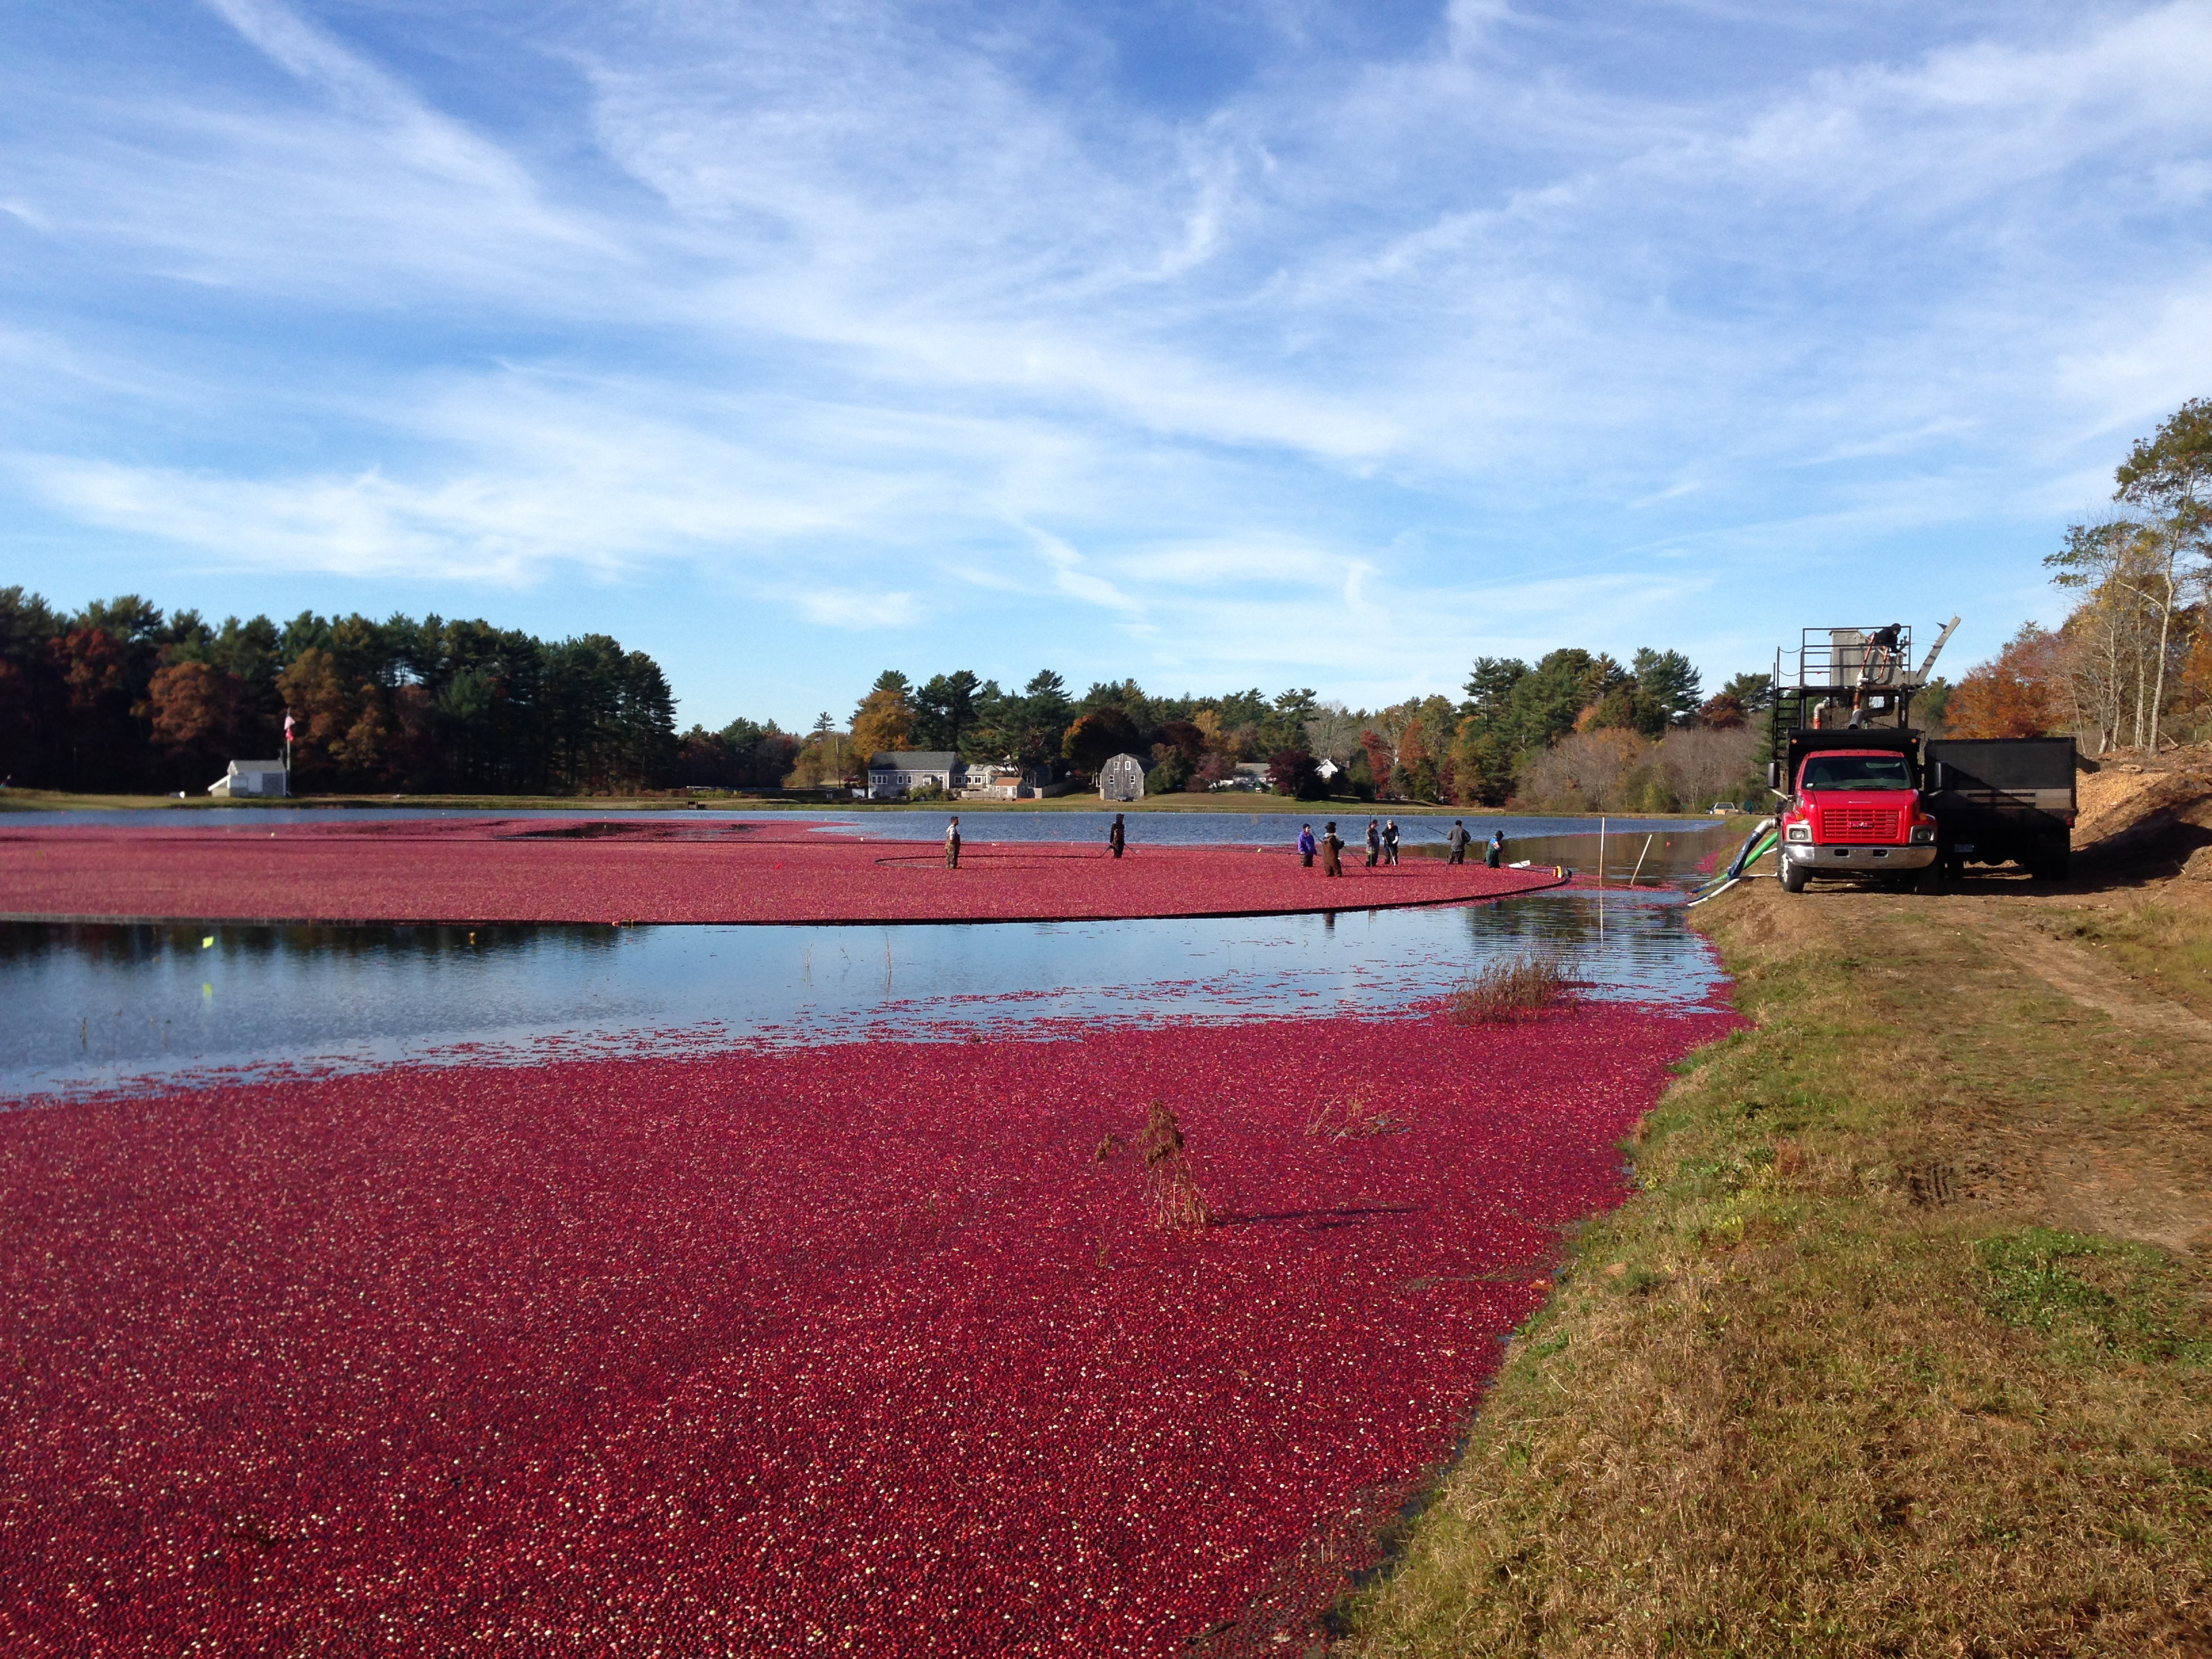 growers load cranberries after a harvest at mayflower cranberries in plympton m